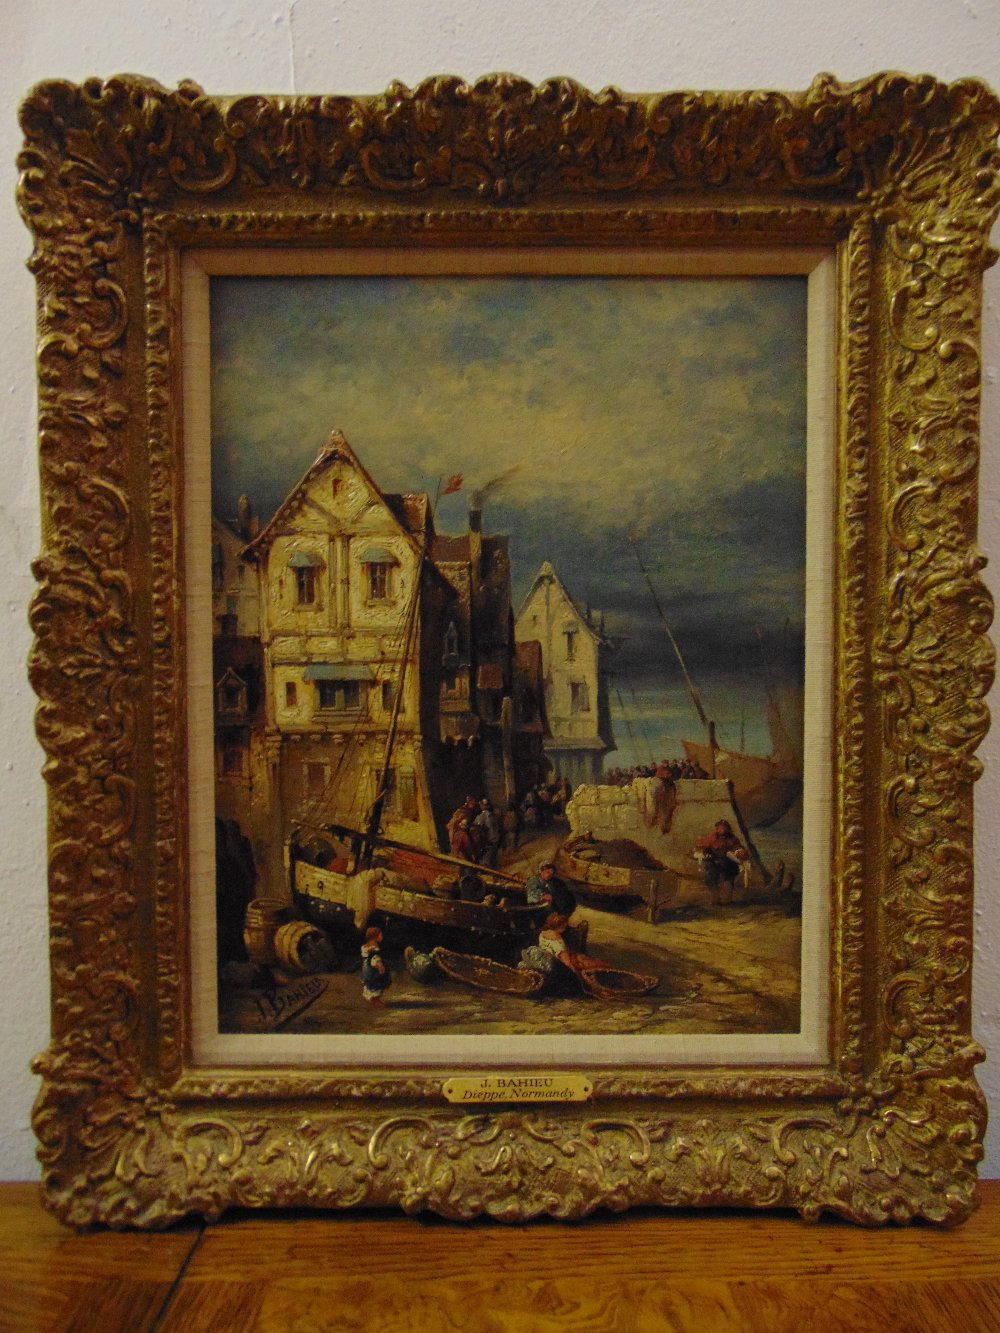 Lot 84 - Jules George Bahieu 1860-1895 framed oil on panel titled Dieppe Normandy with houses and fishing